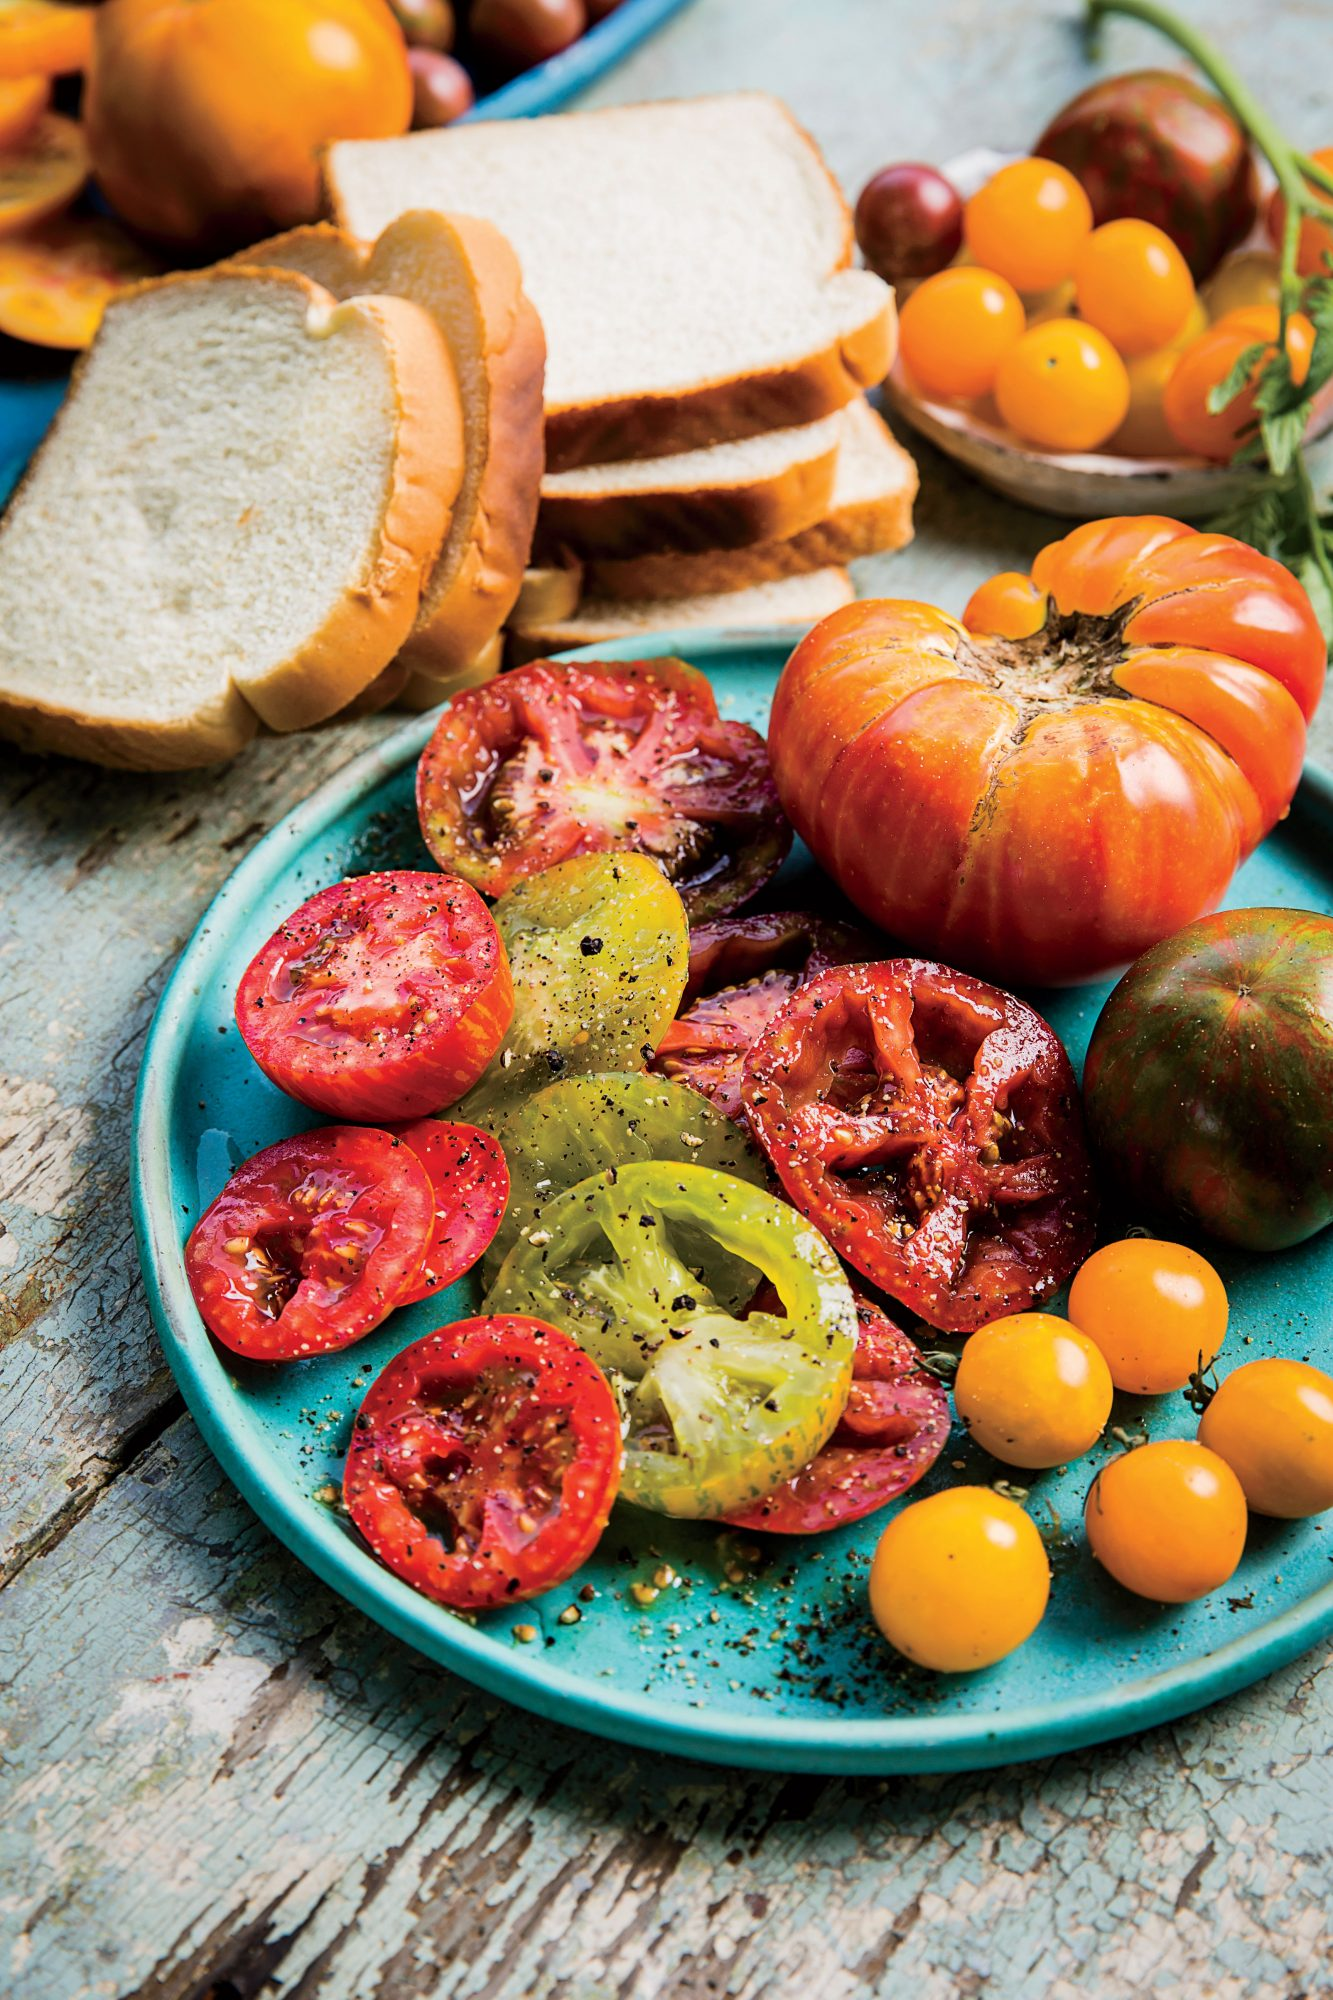 Rodger Winn Heirloom Tomatoes Sliced